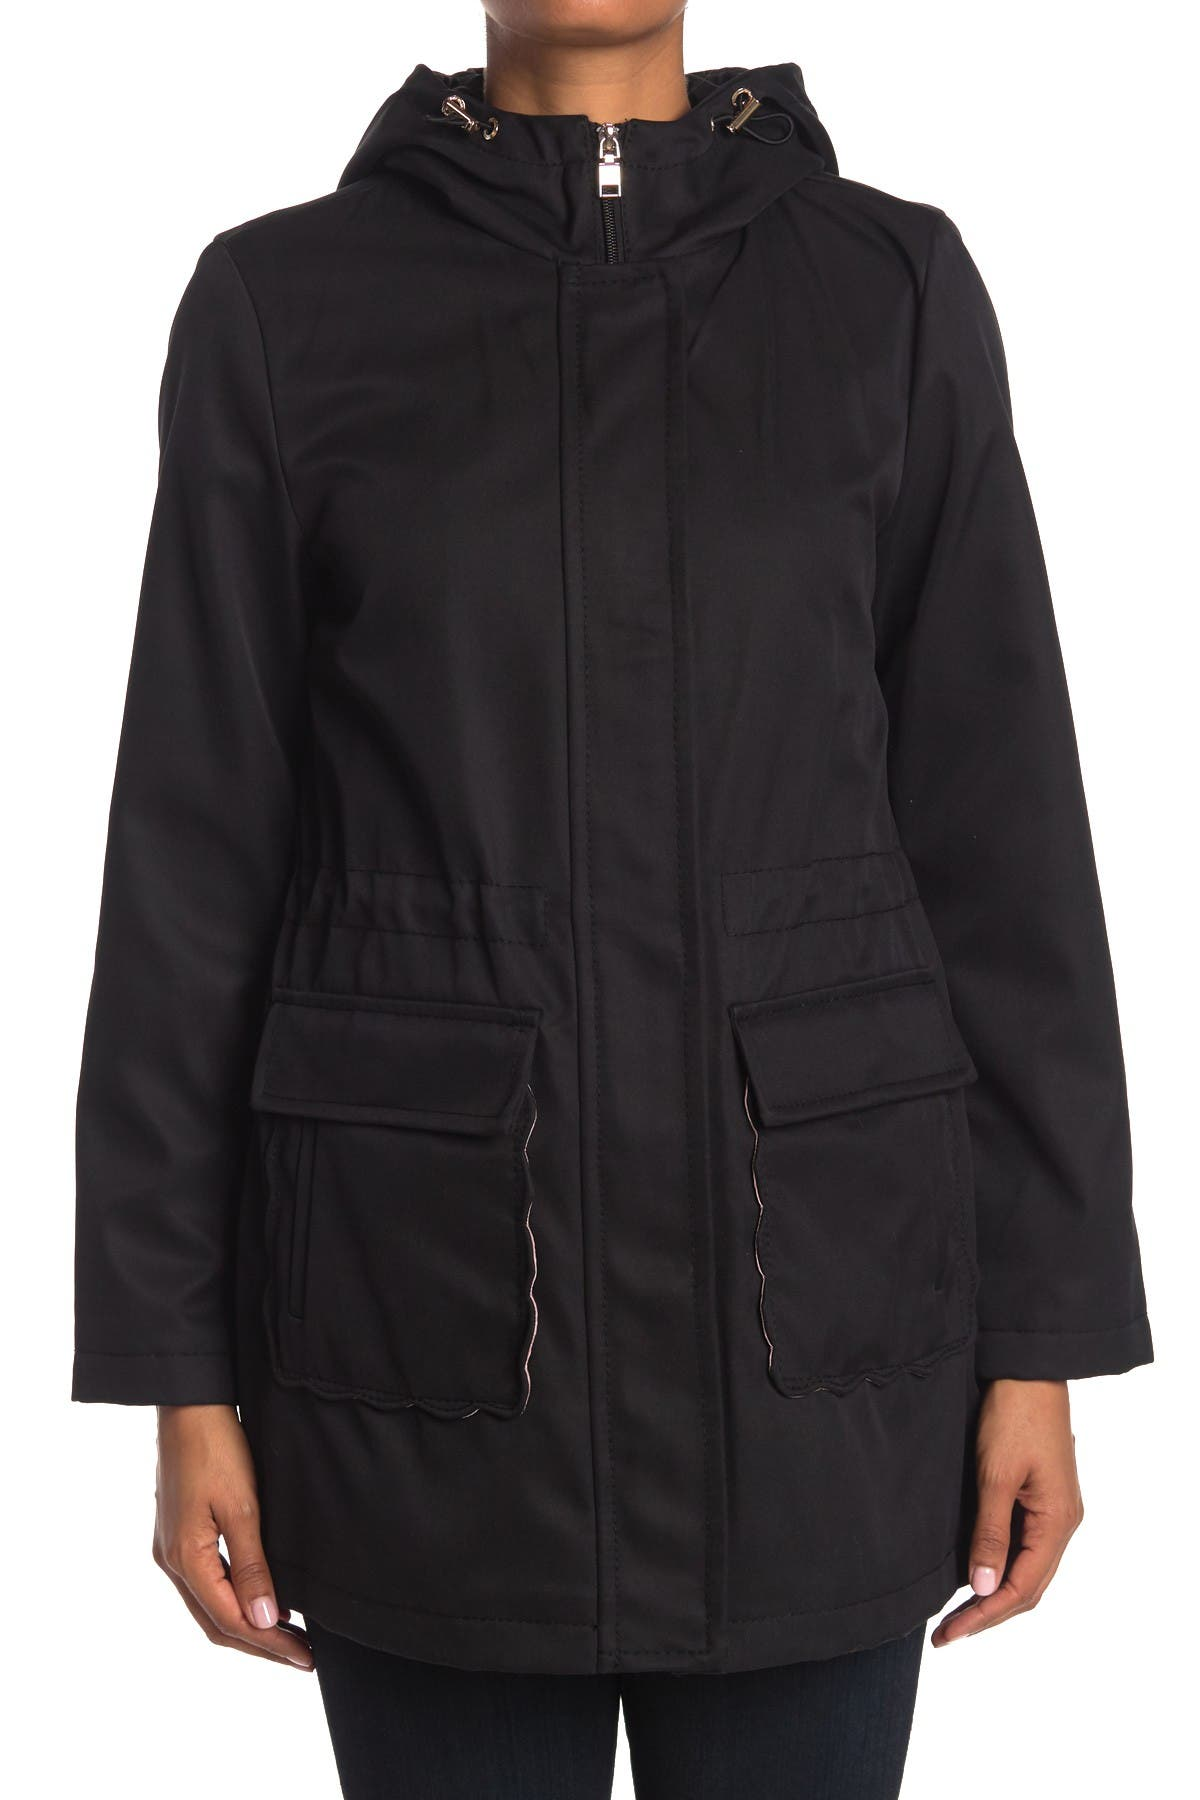 Kate spade new york hooded water resistant trench coat